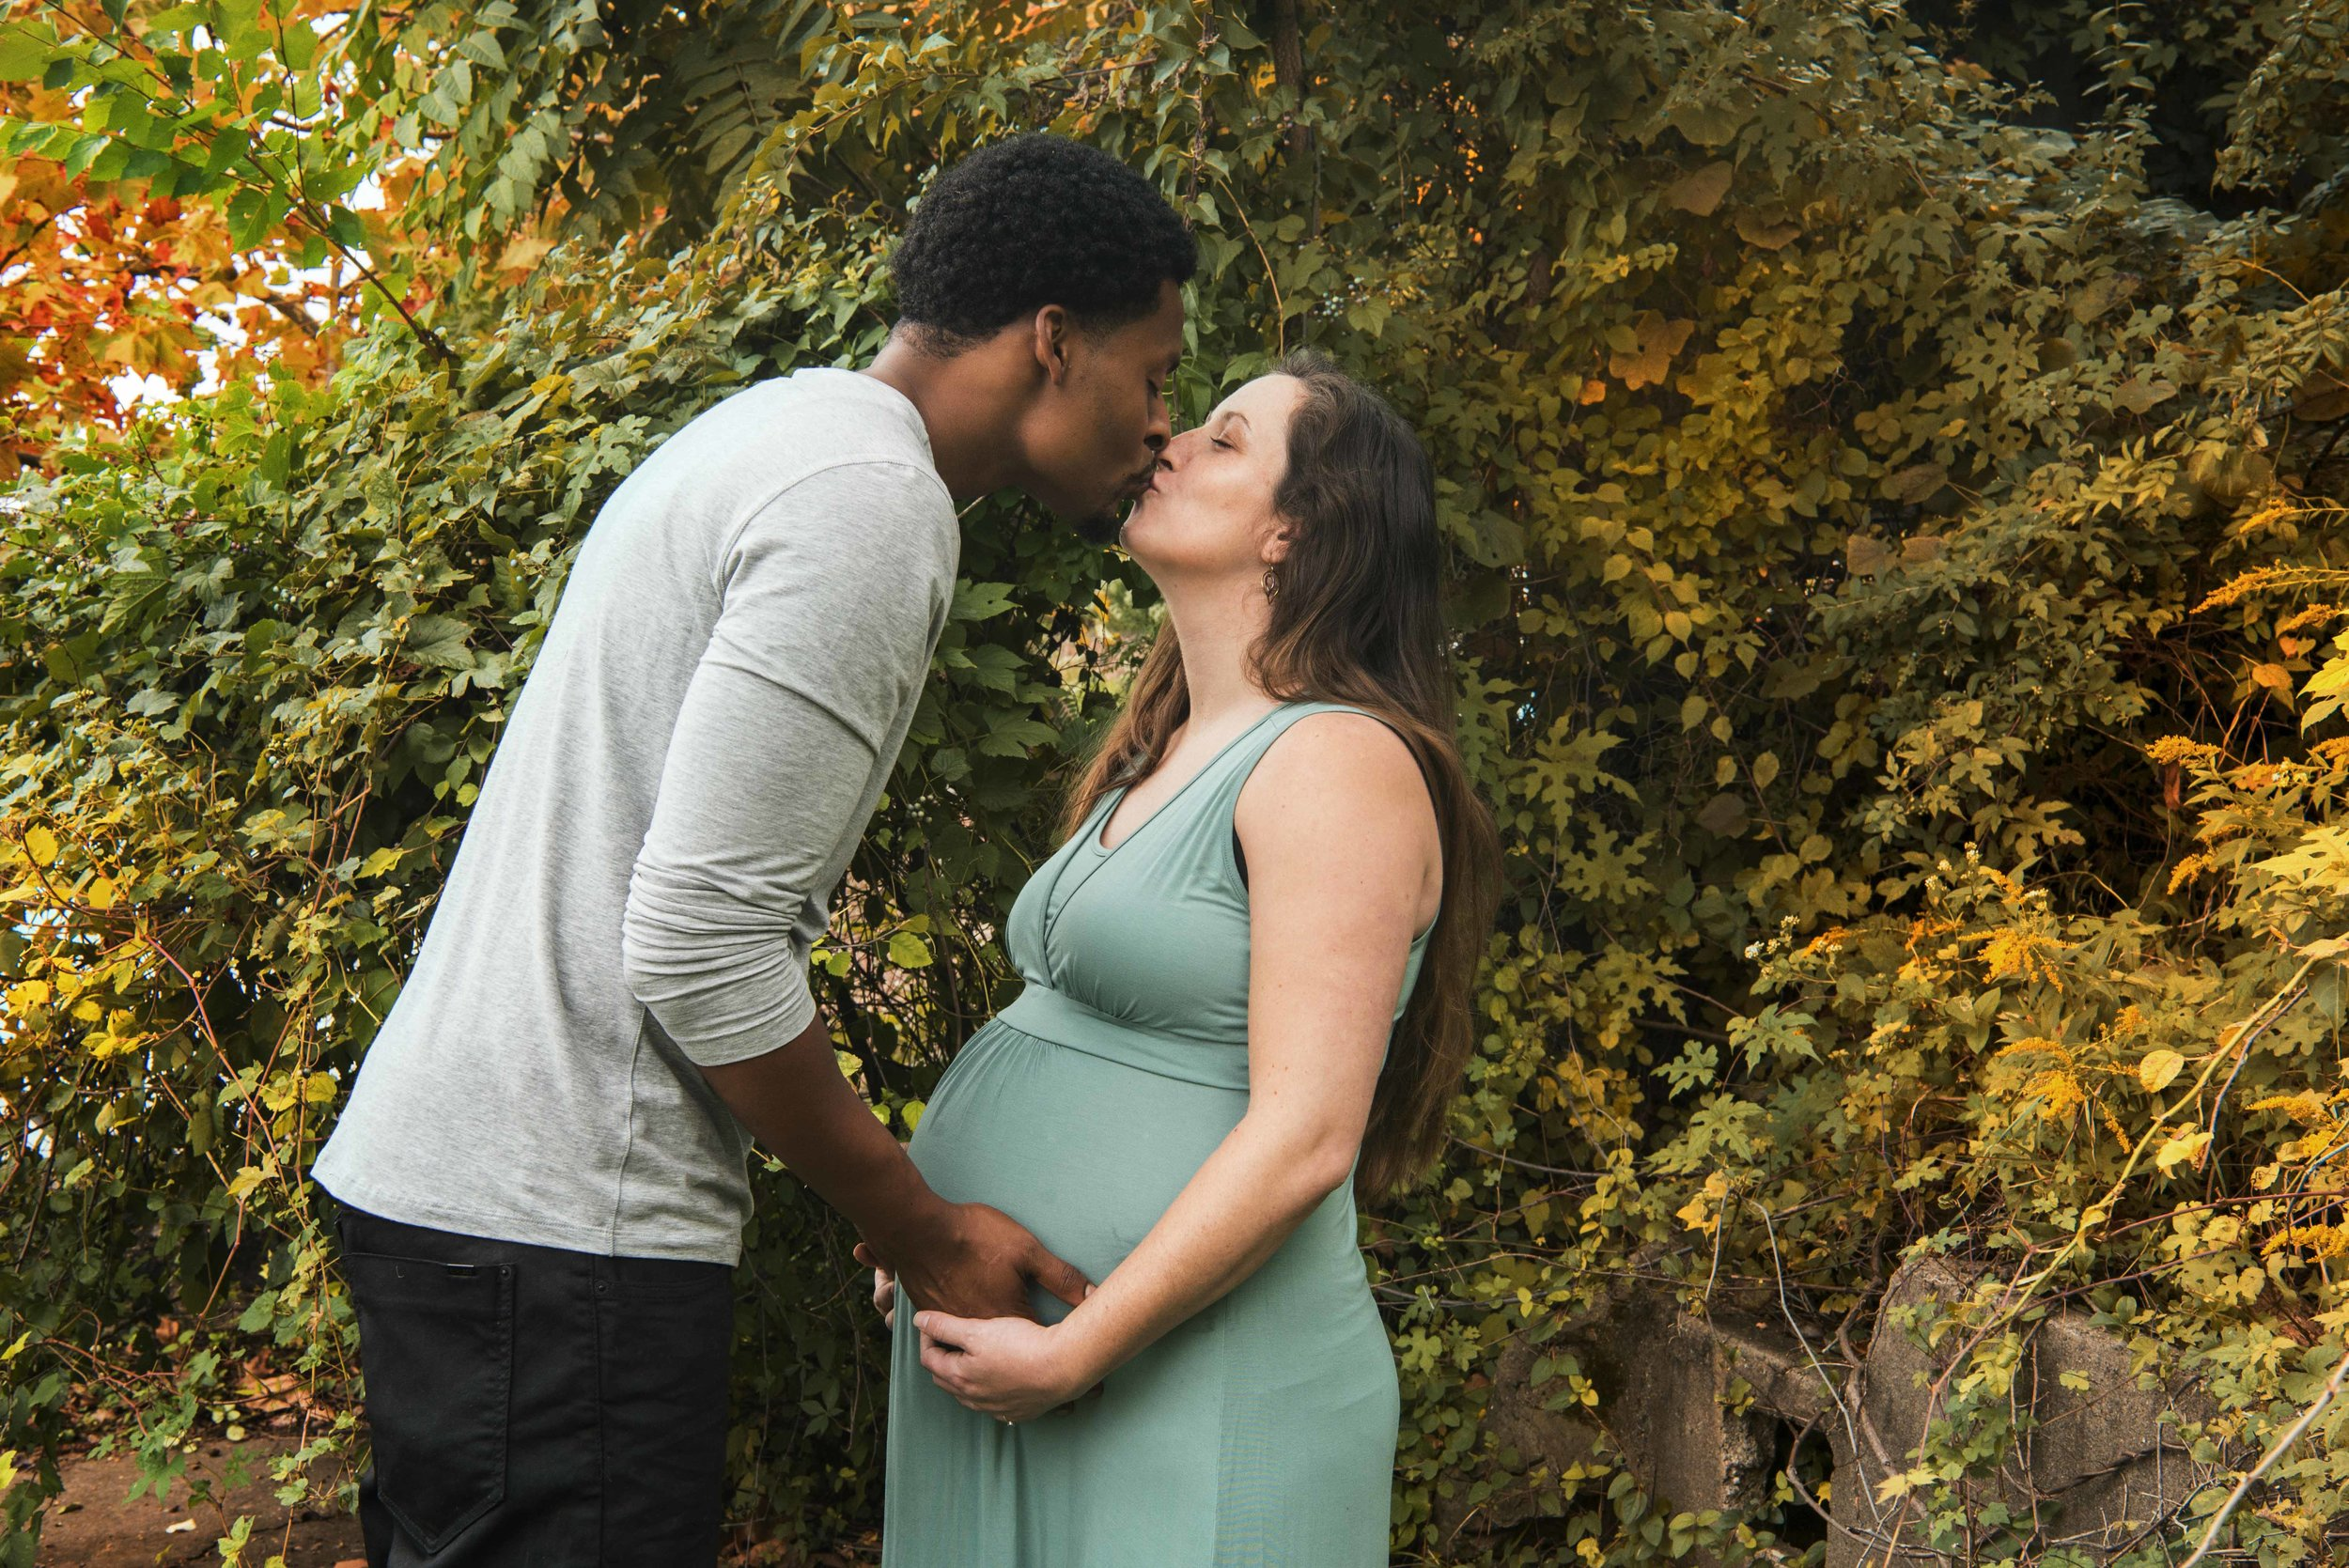 Katie-and-Lee-Maternity-Brittany-Petronella-DSC_5877 copy07.jpg